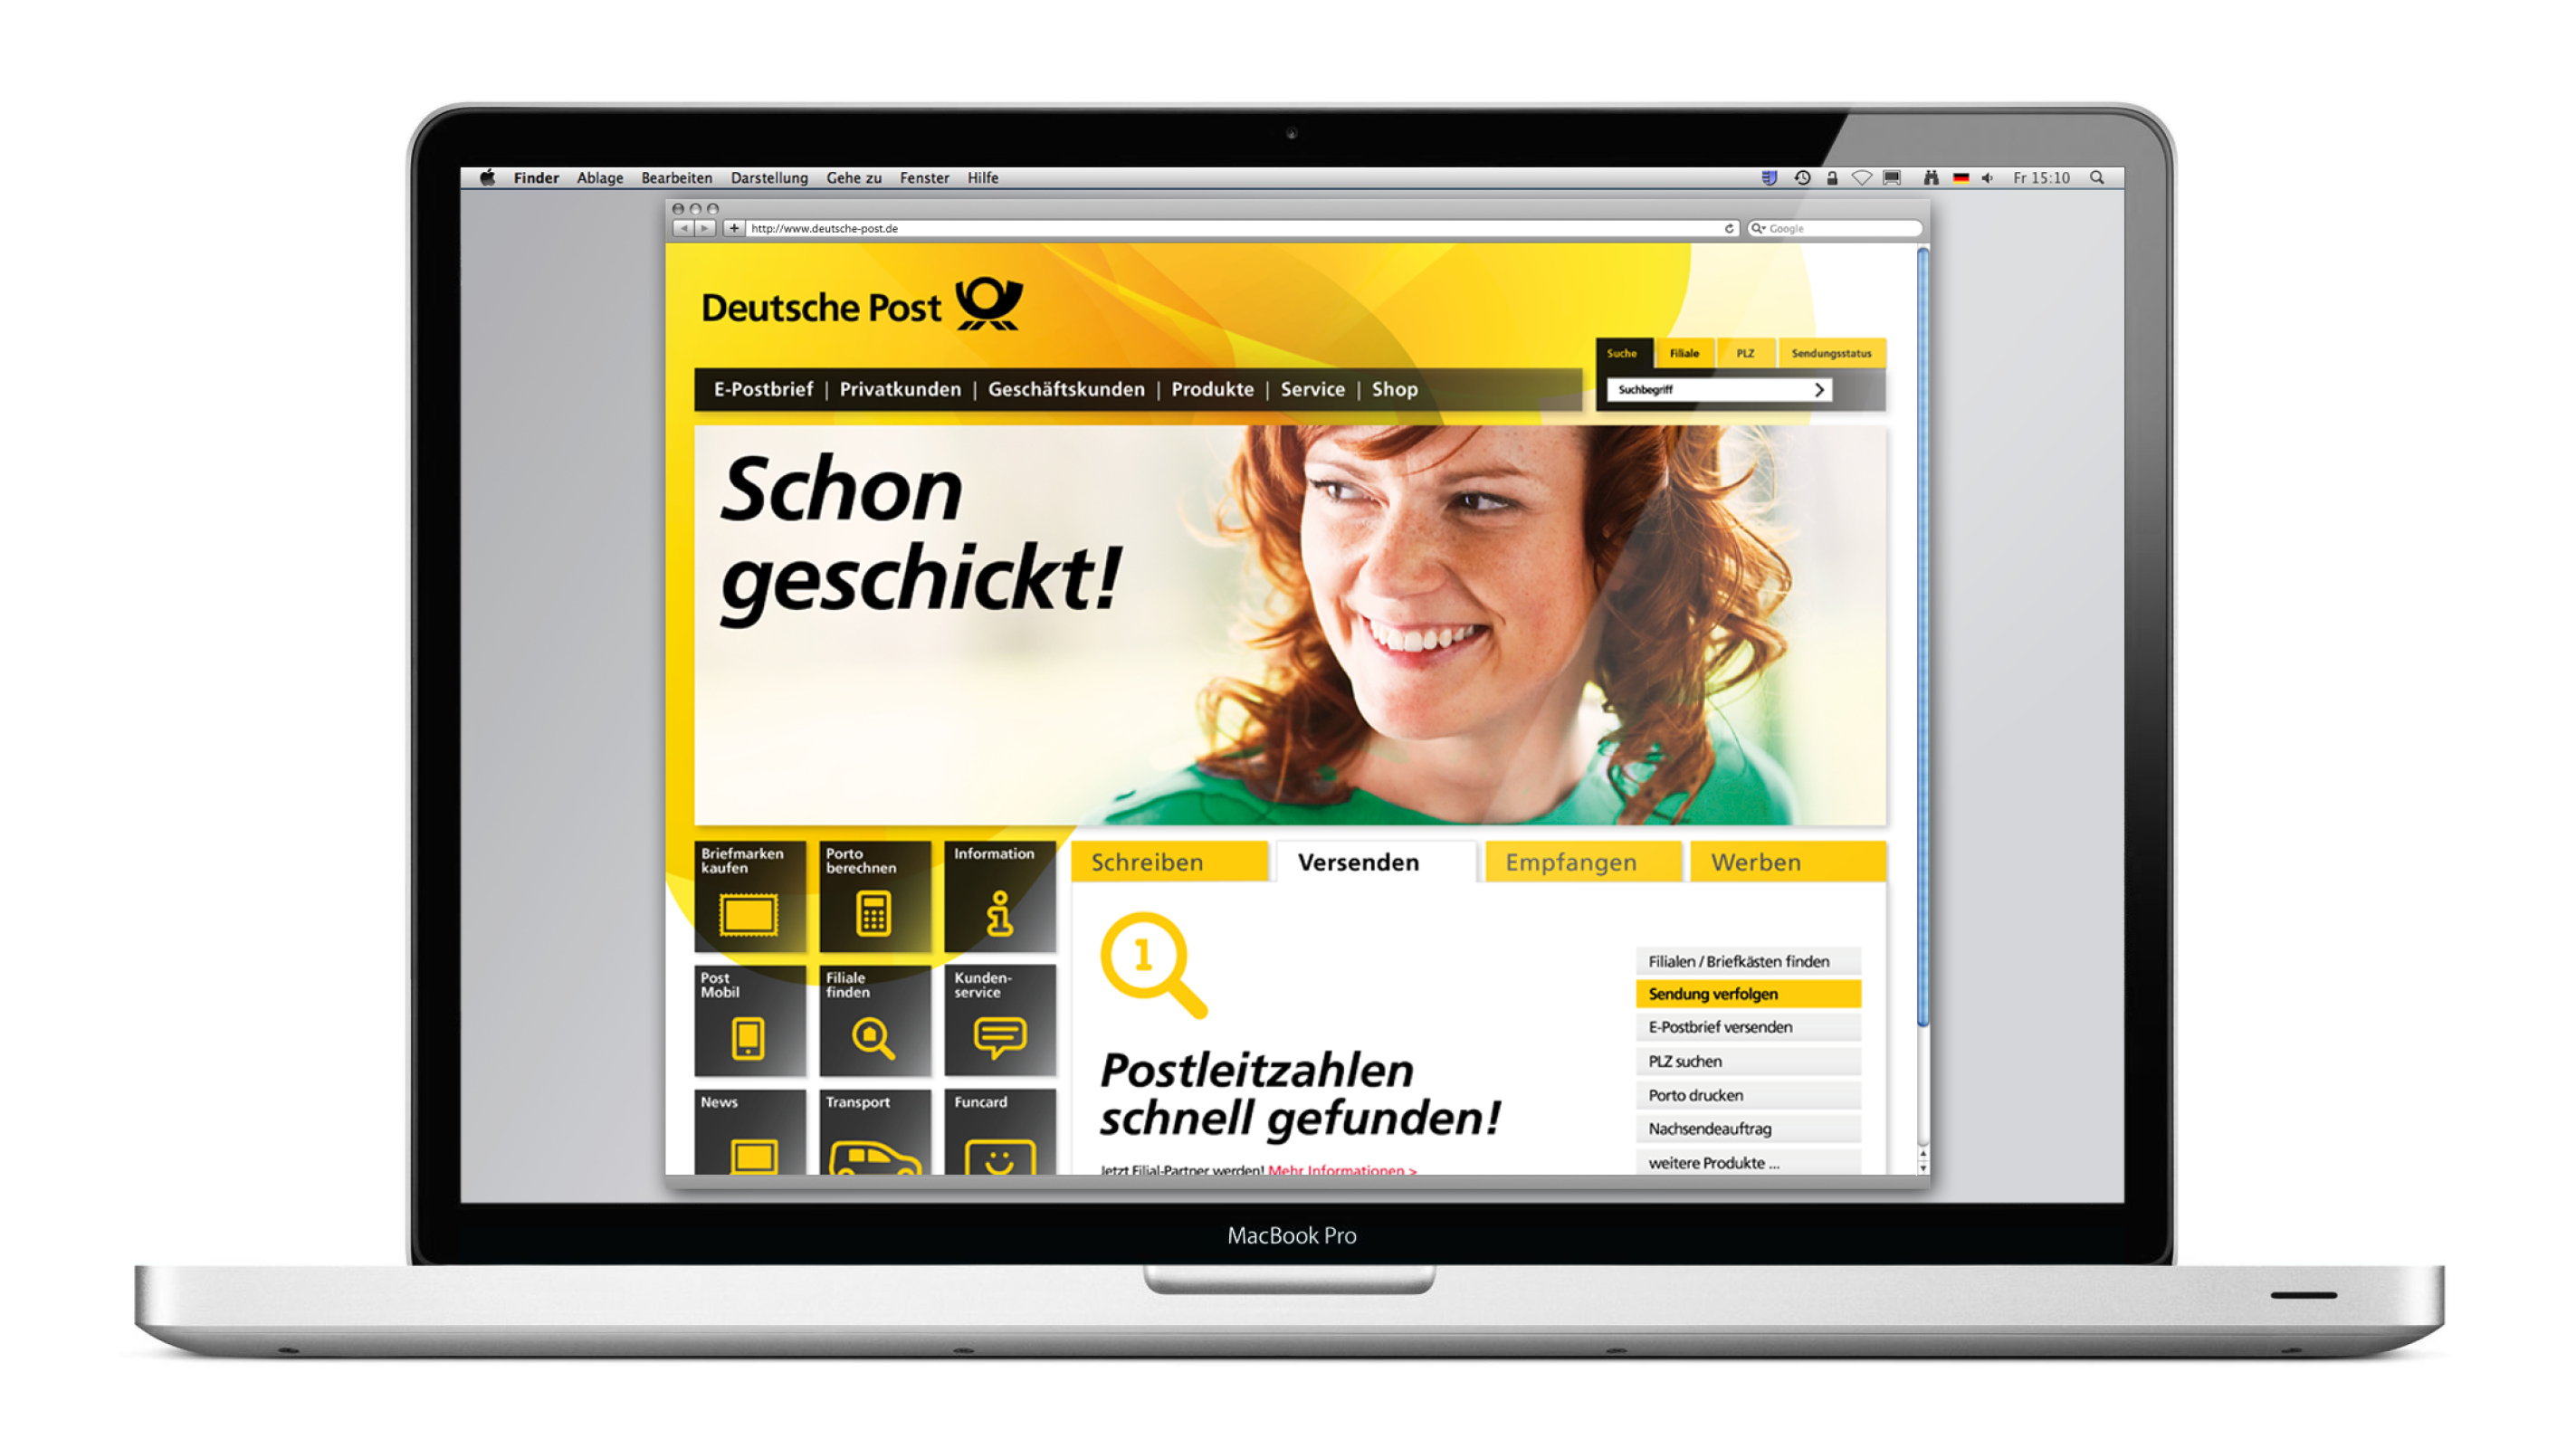 Deutsche Post – Poarangan Brand Design5